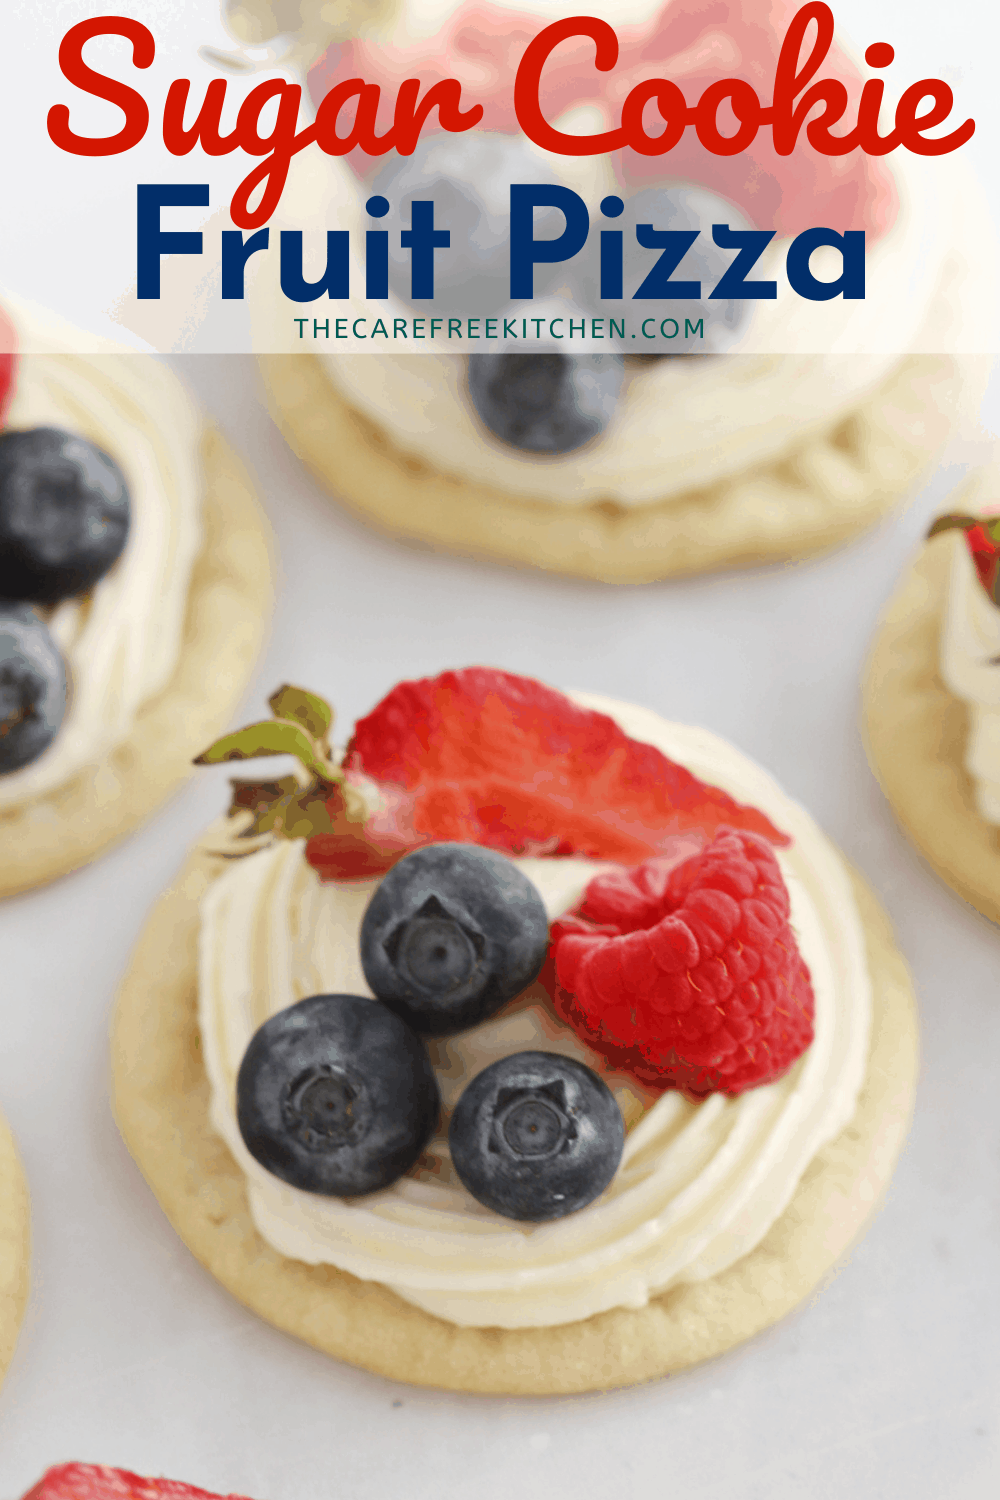 Pinterest pin for Sugar Cookie Fruit Pizza.